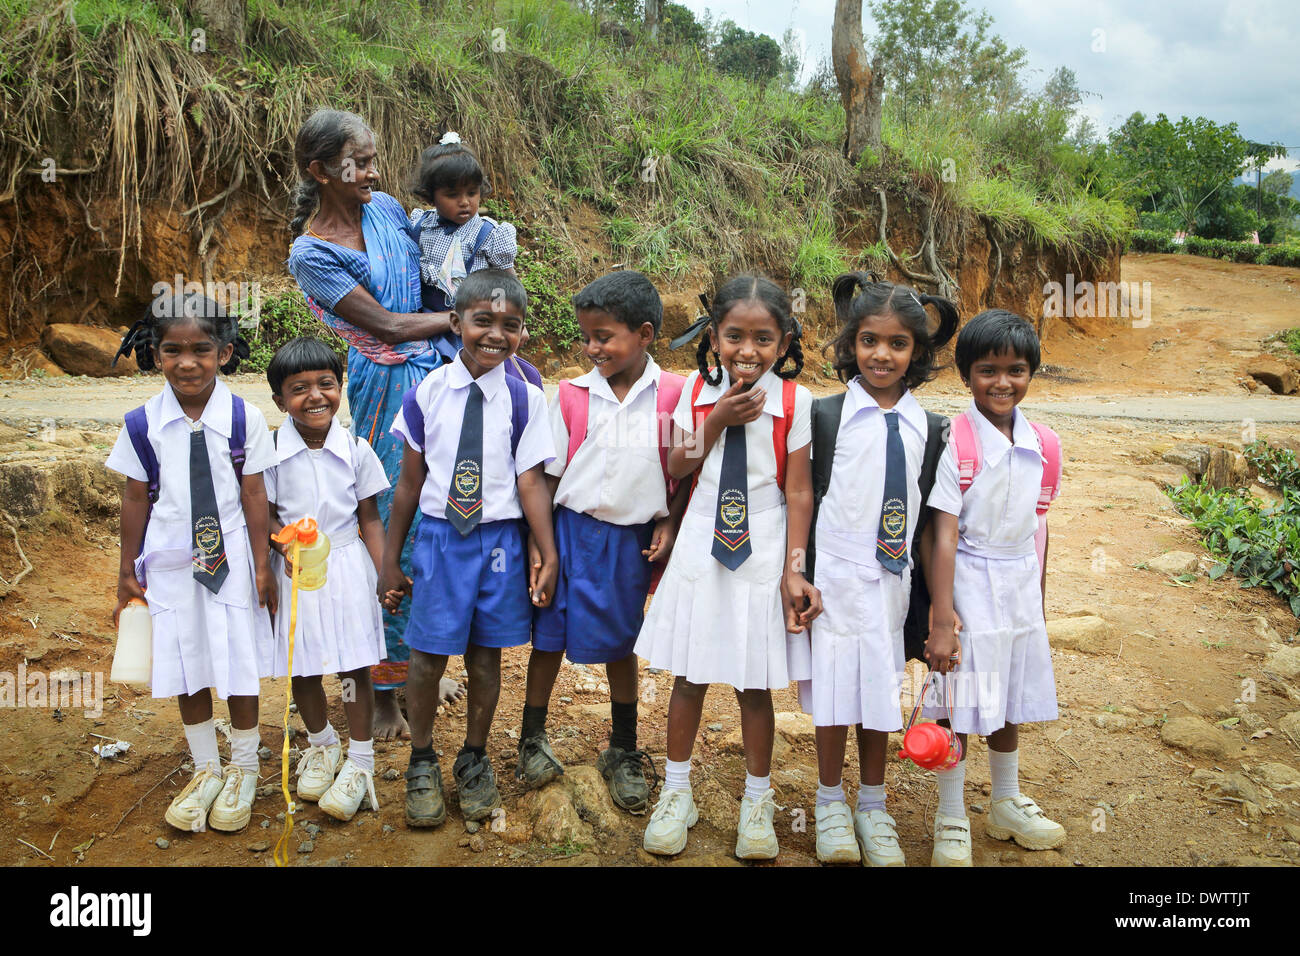 Young schoolchildren neatly dressed in uniform on their way home from school in a tea plantation community - Stock Image